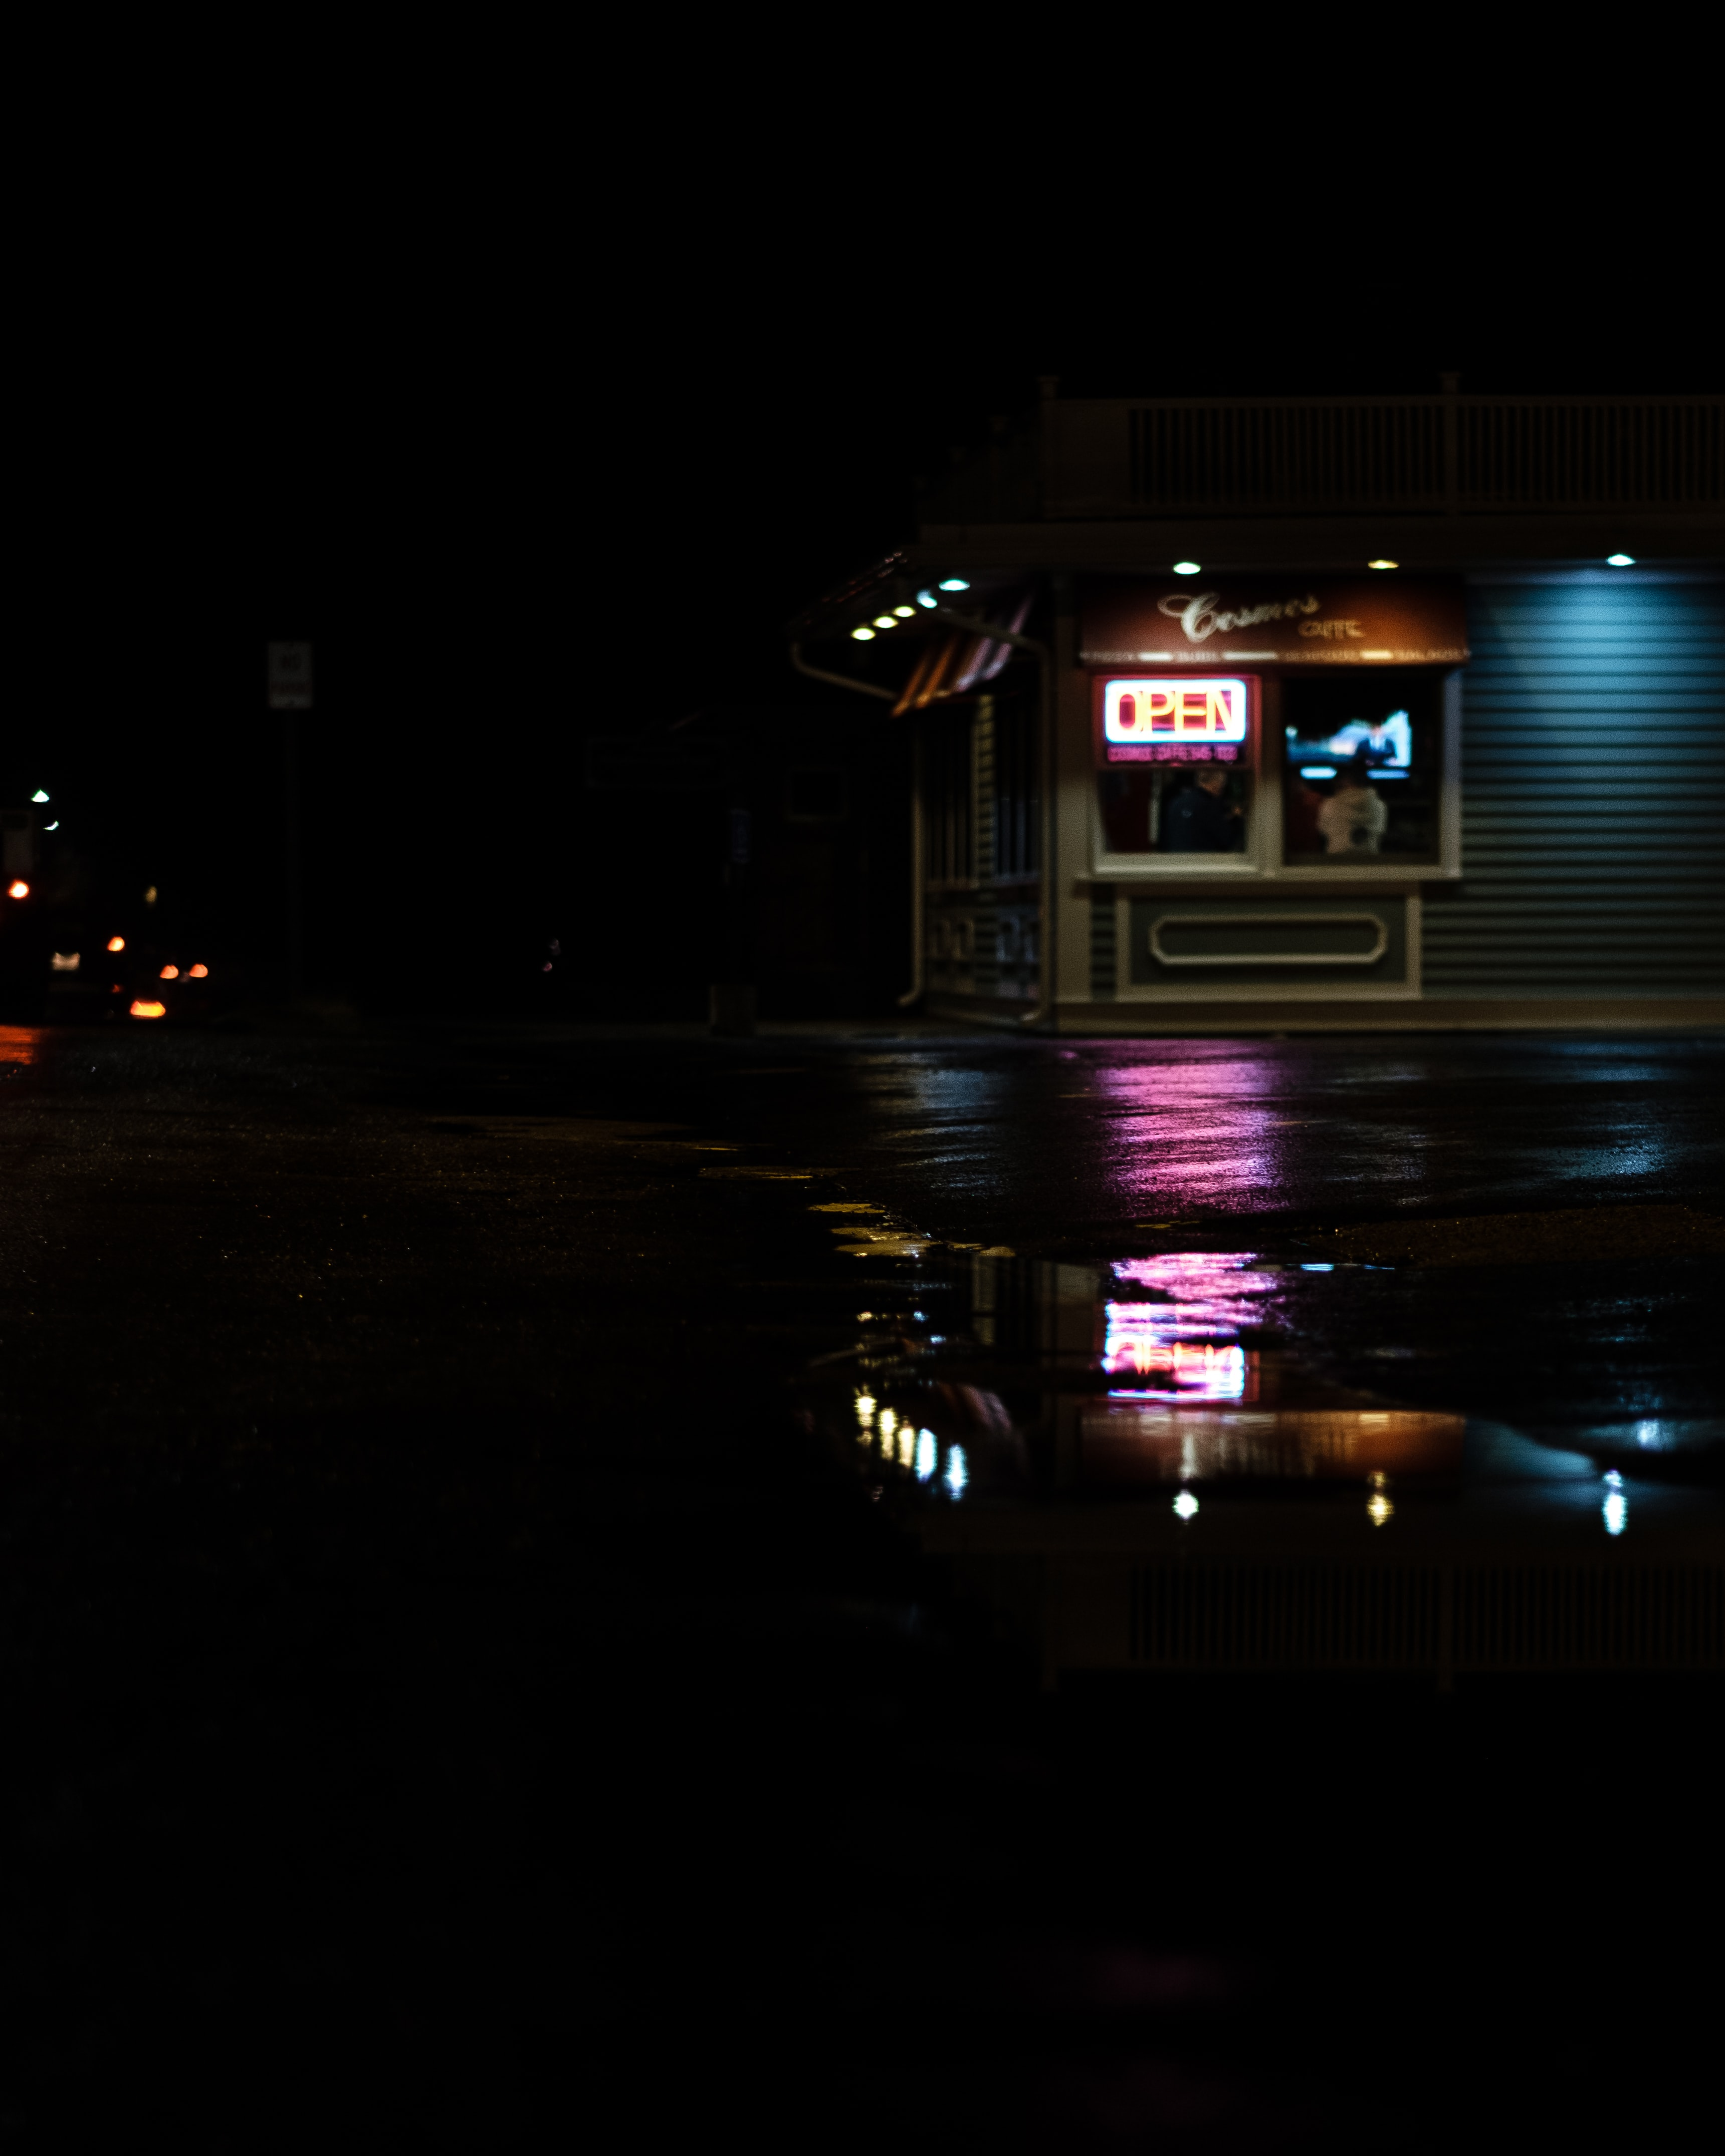 A store in the dark and a puddle reflecting the neon lights from the storefront window